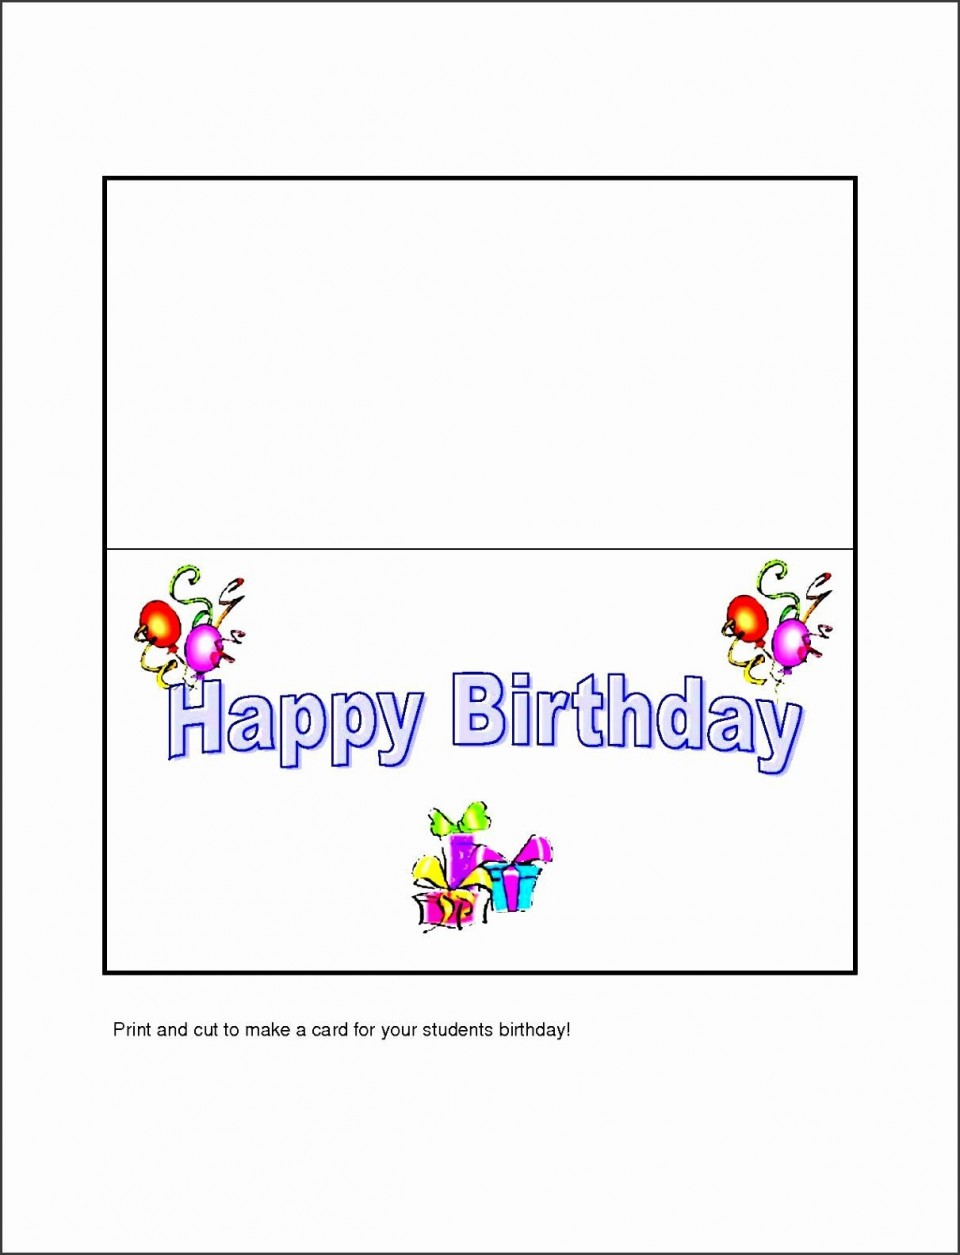 005 Fearsome Template For Birthday Card Photo  Microsoft Word Design Happy960